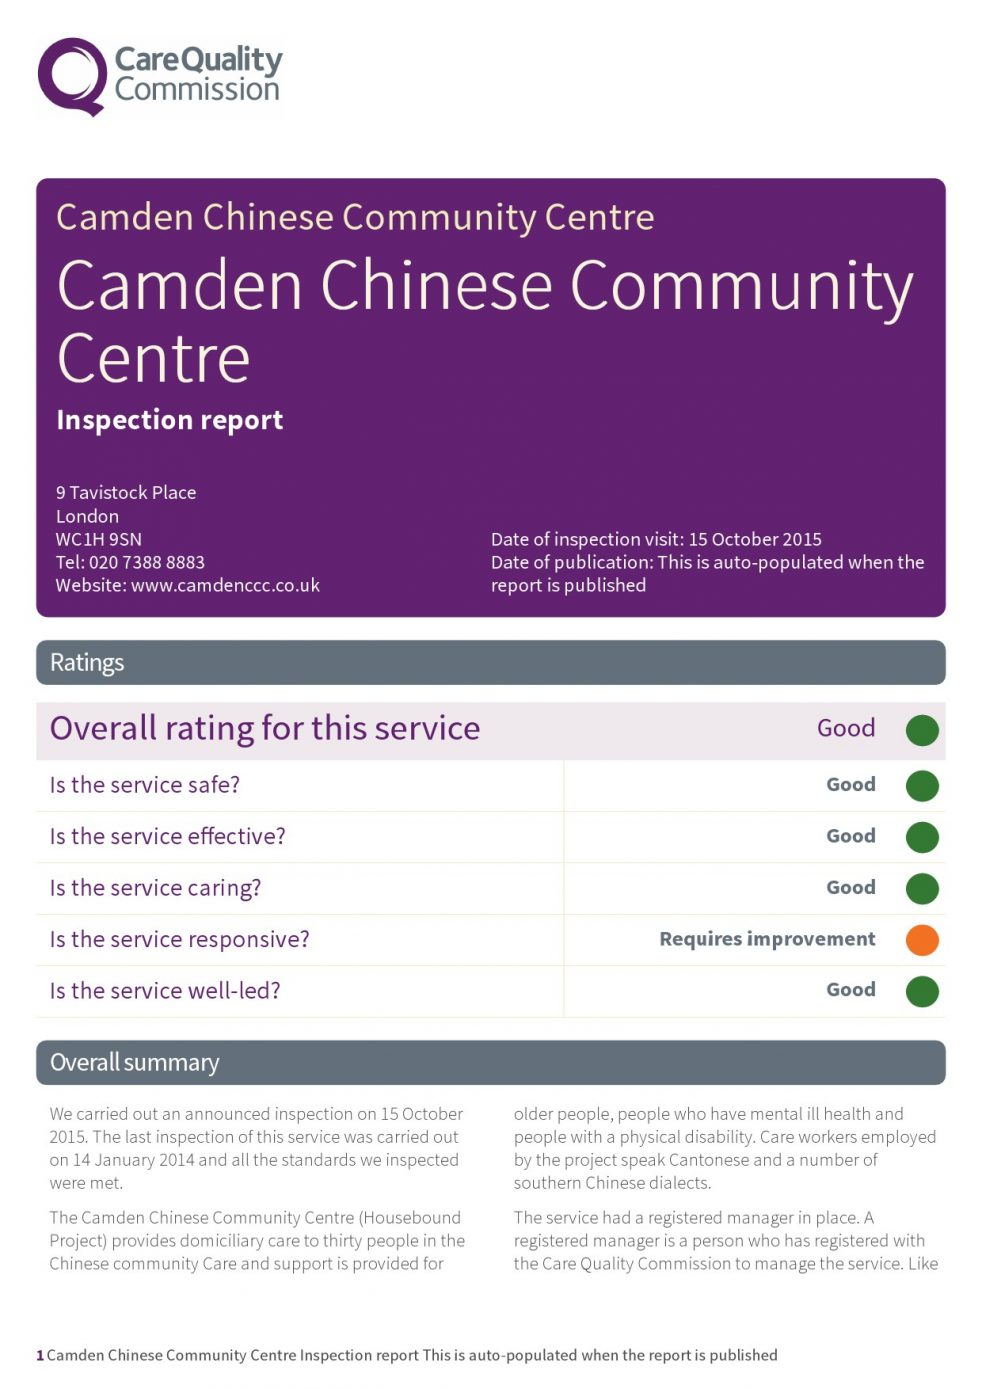 First_location_camden_chinese_community_centre-1